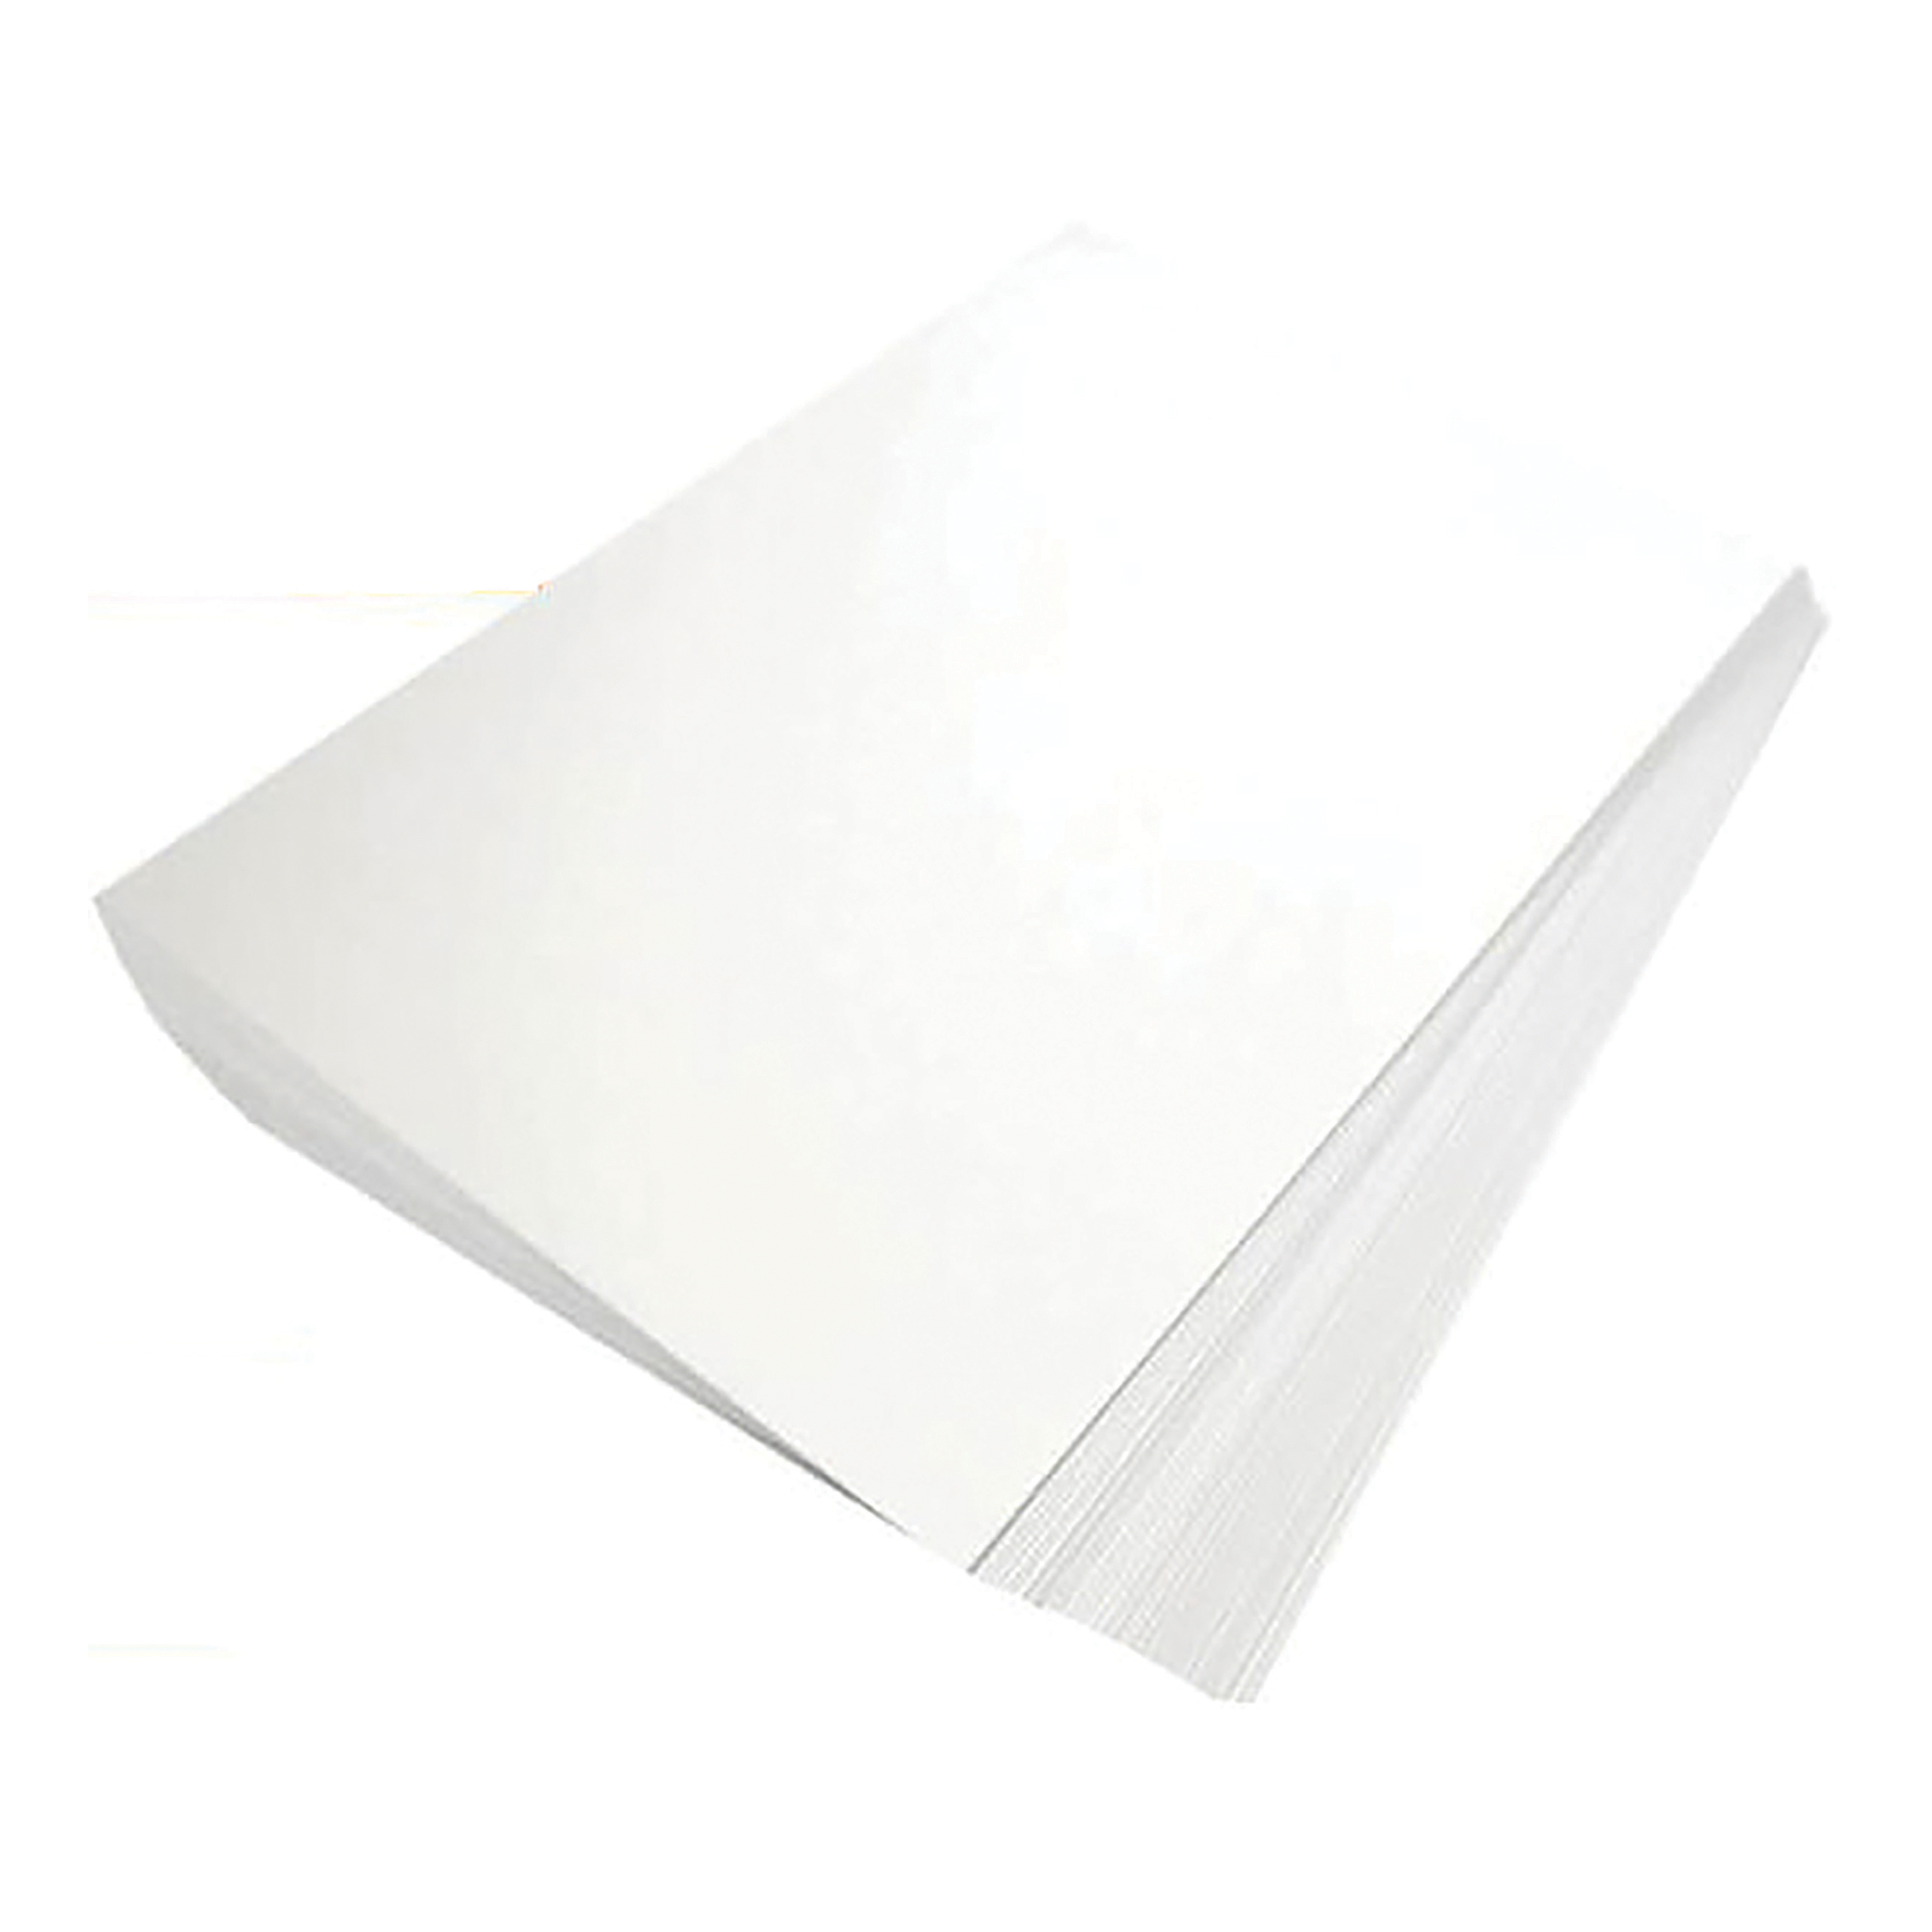 A4 5 Star Elite Premium Business Paper Wove Finish Ream-Wrapped 100gsm A4 Vellum [500 Sheets]